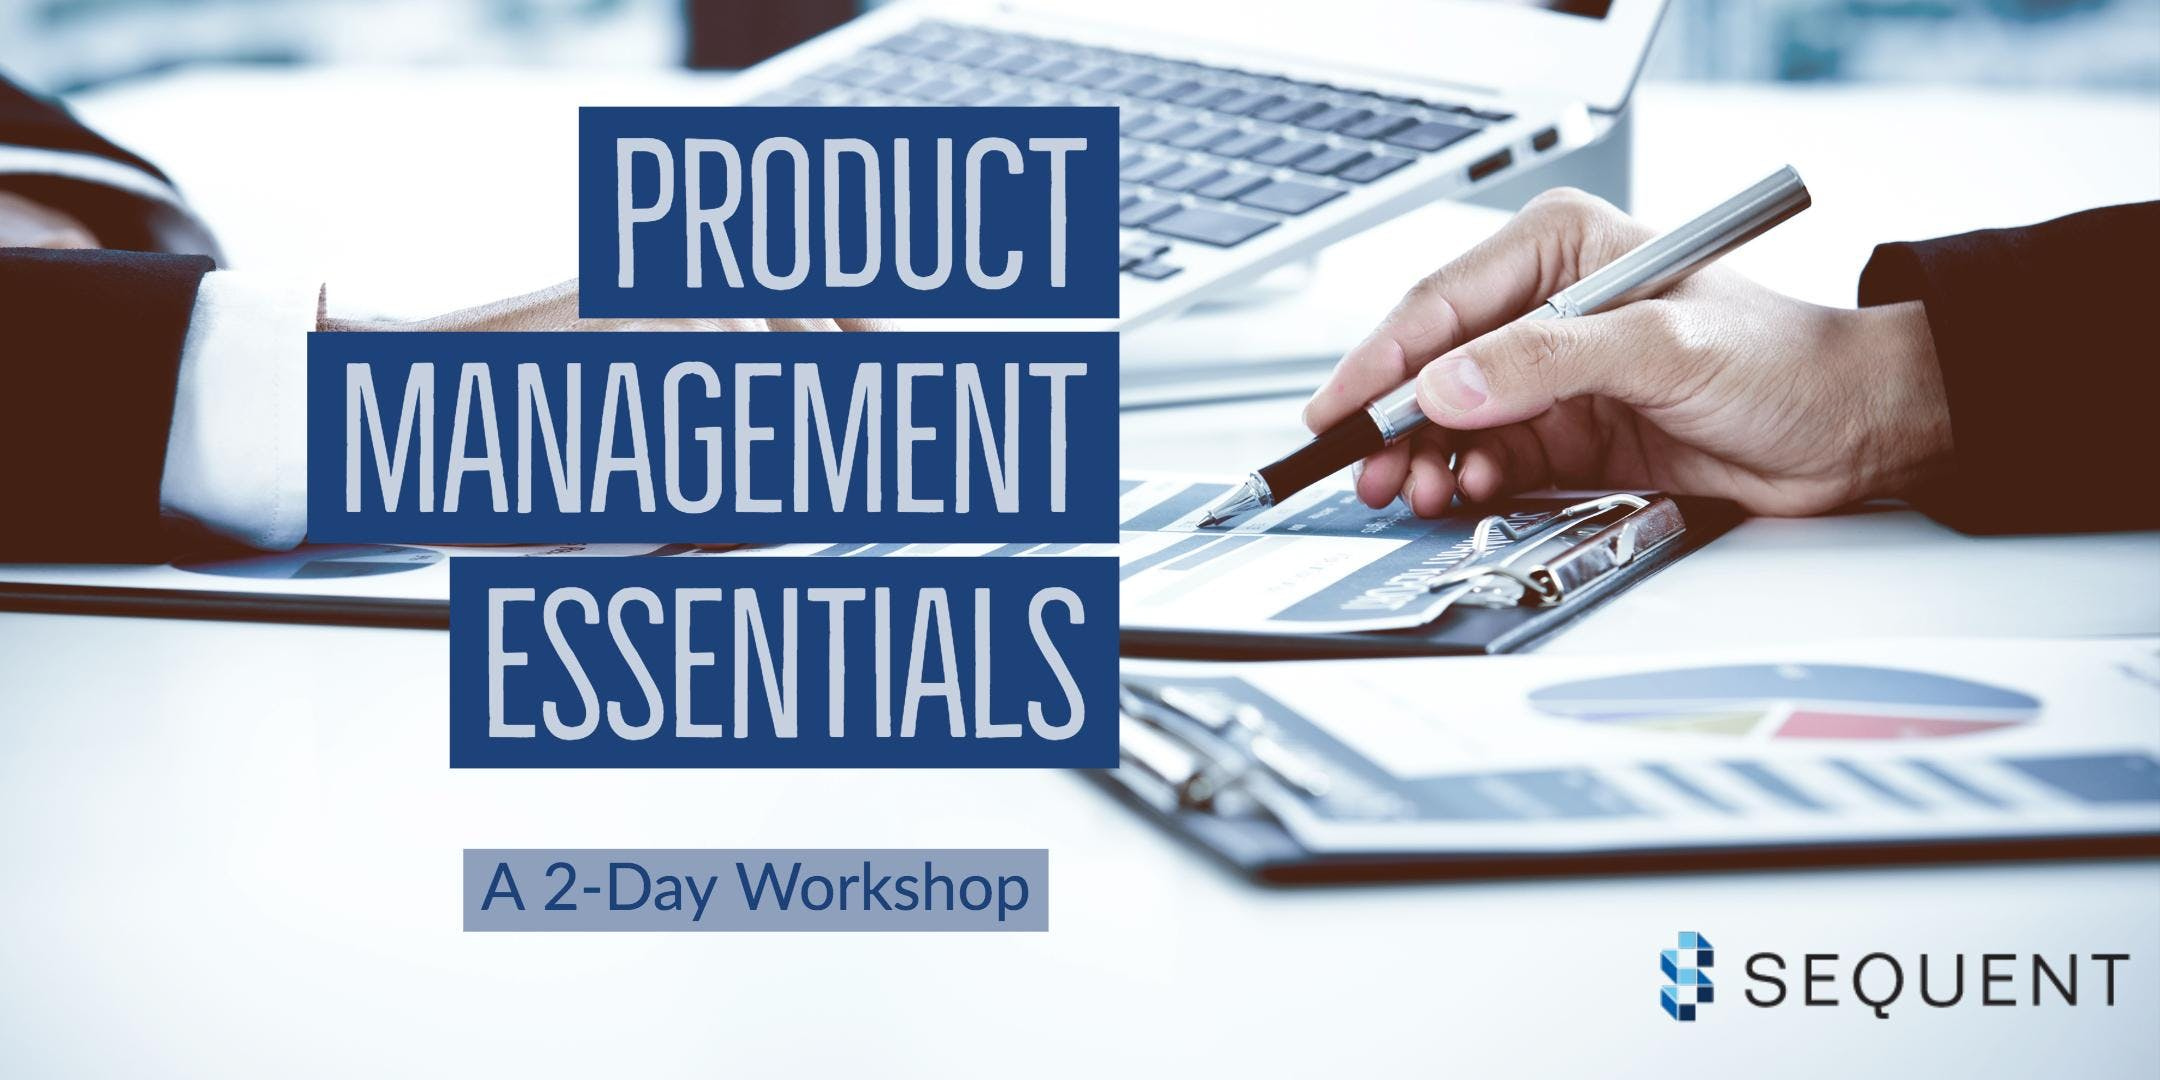 Product Management Essentials Workshop  New York City